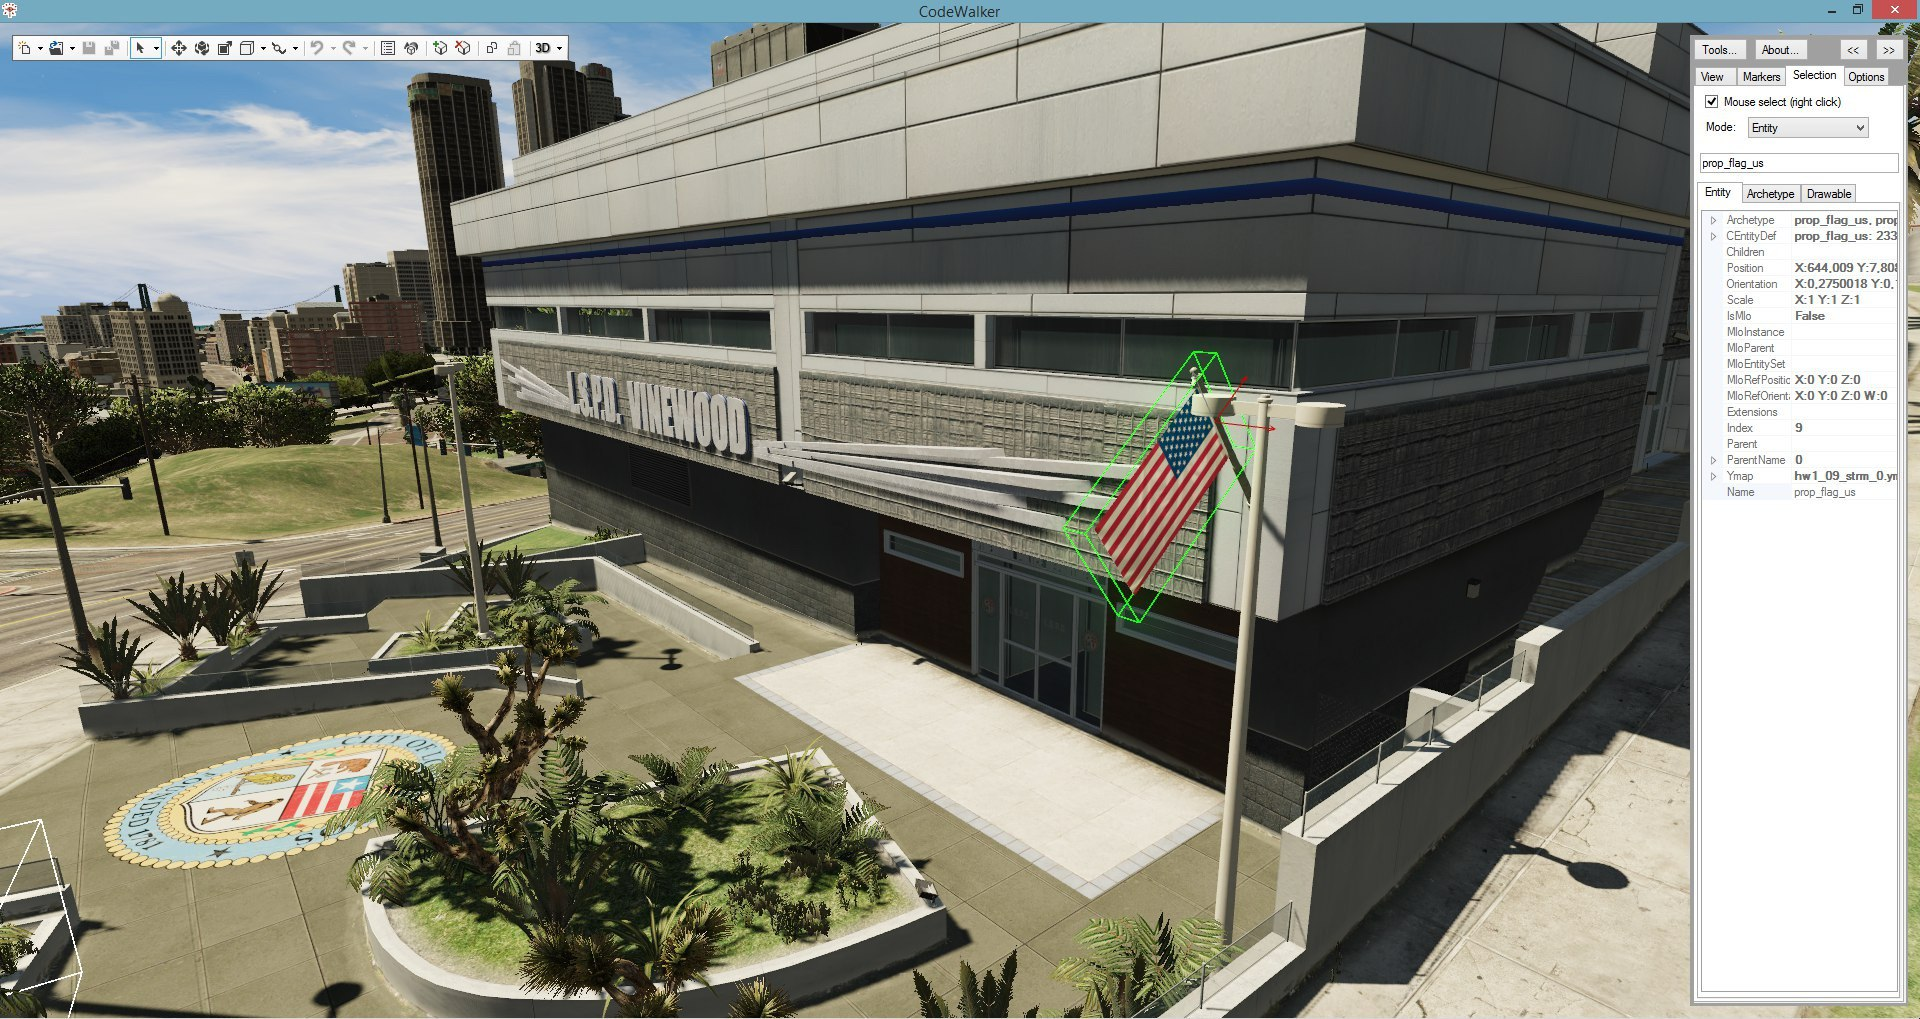 ZModeler forum • View topic - GTA5: Cloth-simulated meshes